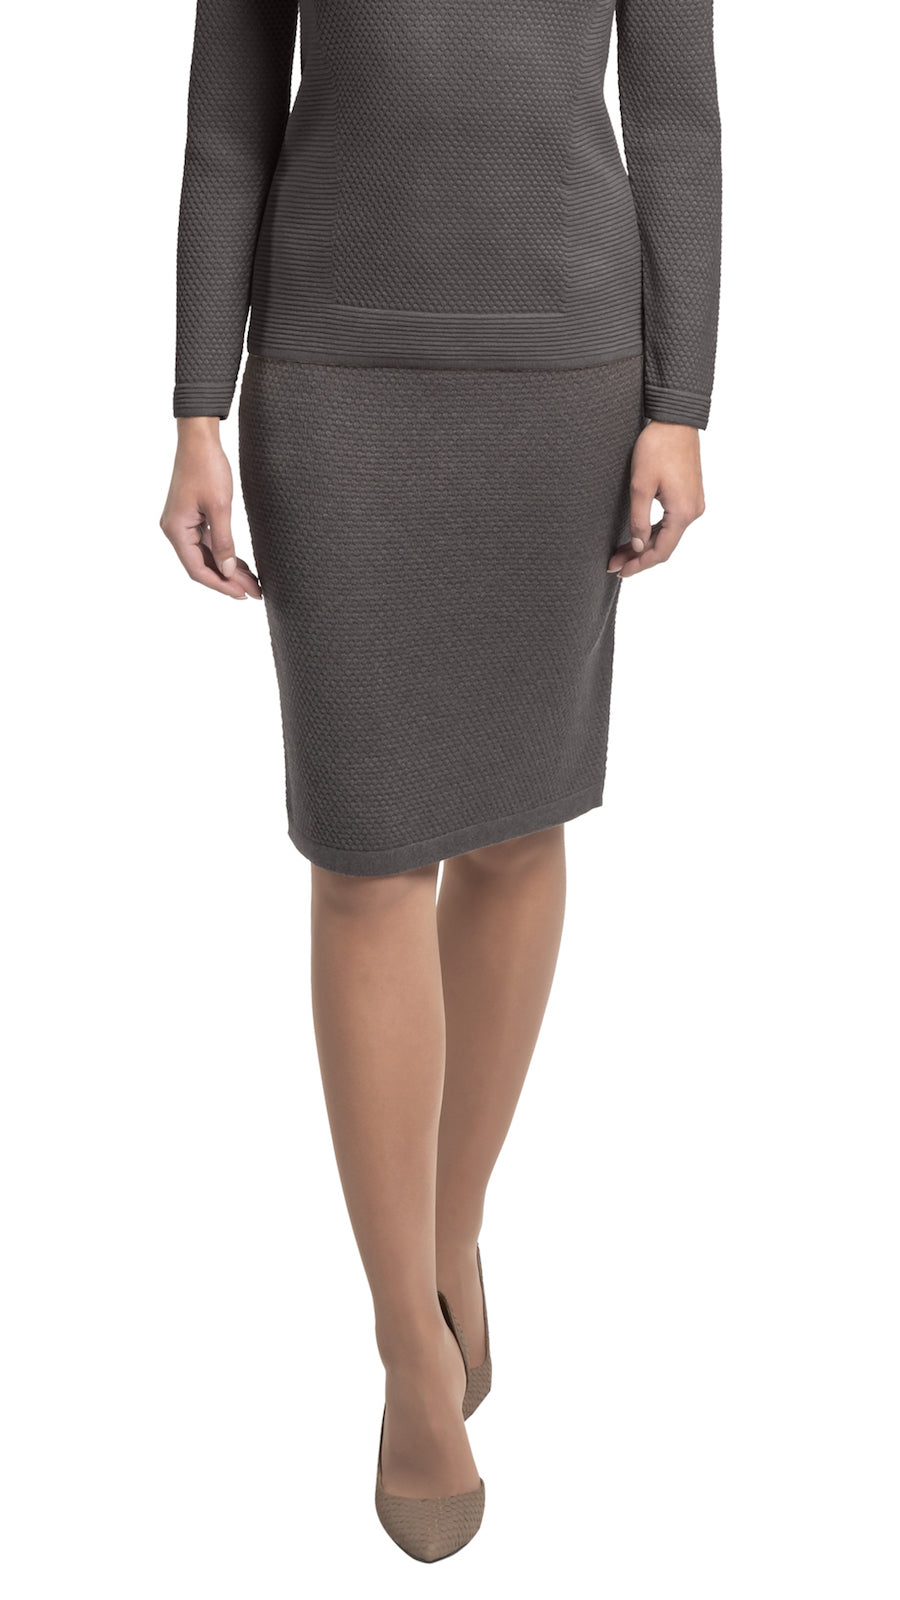 CONTEMPO Jilliane knitted skirt, Taupe Brown